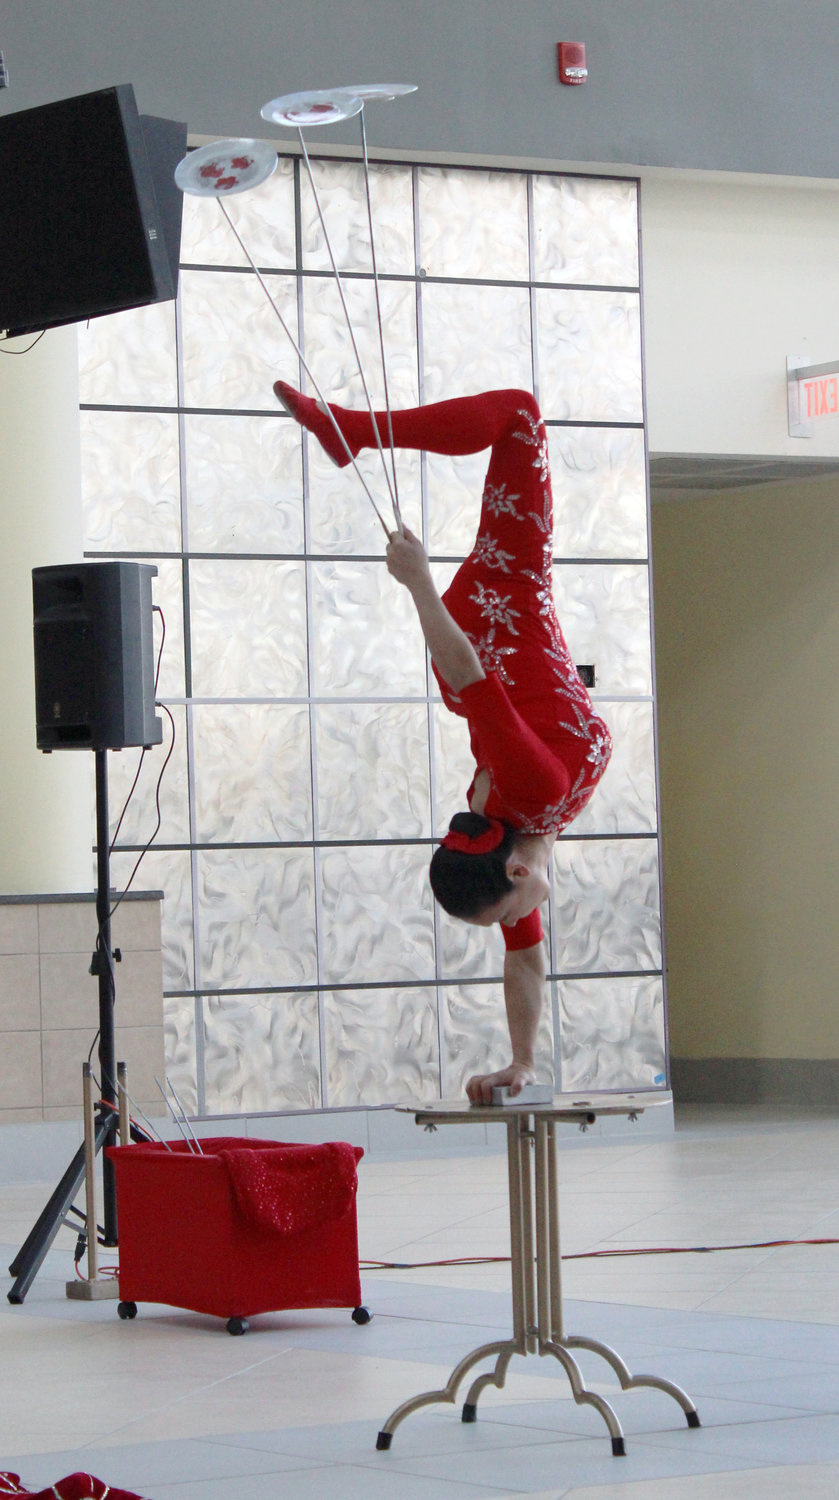 Chinese acrobat Li Liu performed for patrons of the East Meadow Public Library on Jan. 26 at the Samanea New York Market, formerly the Source Mall in Westbury.